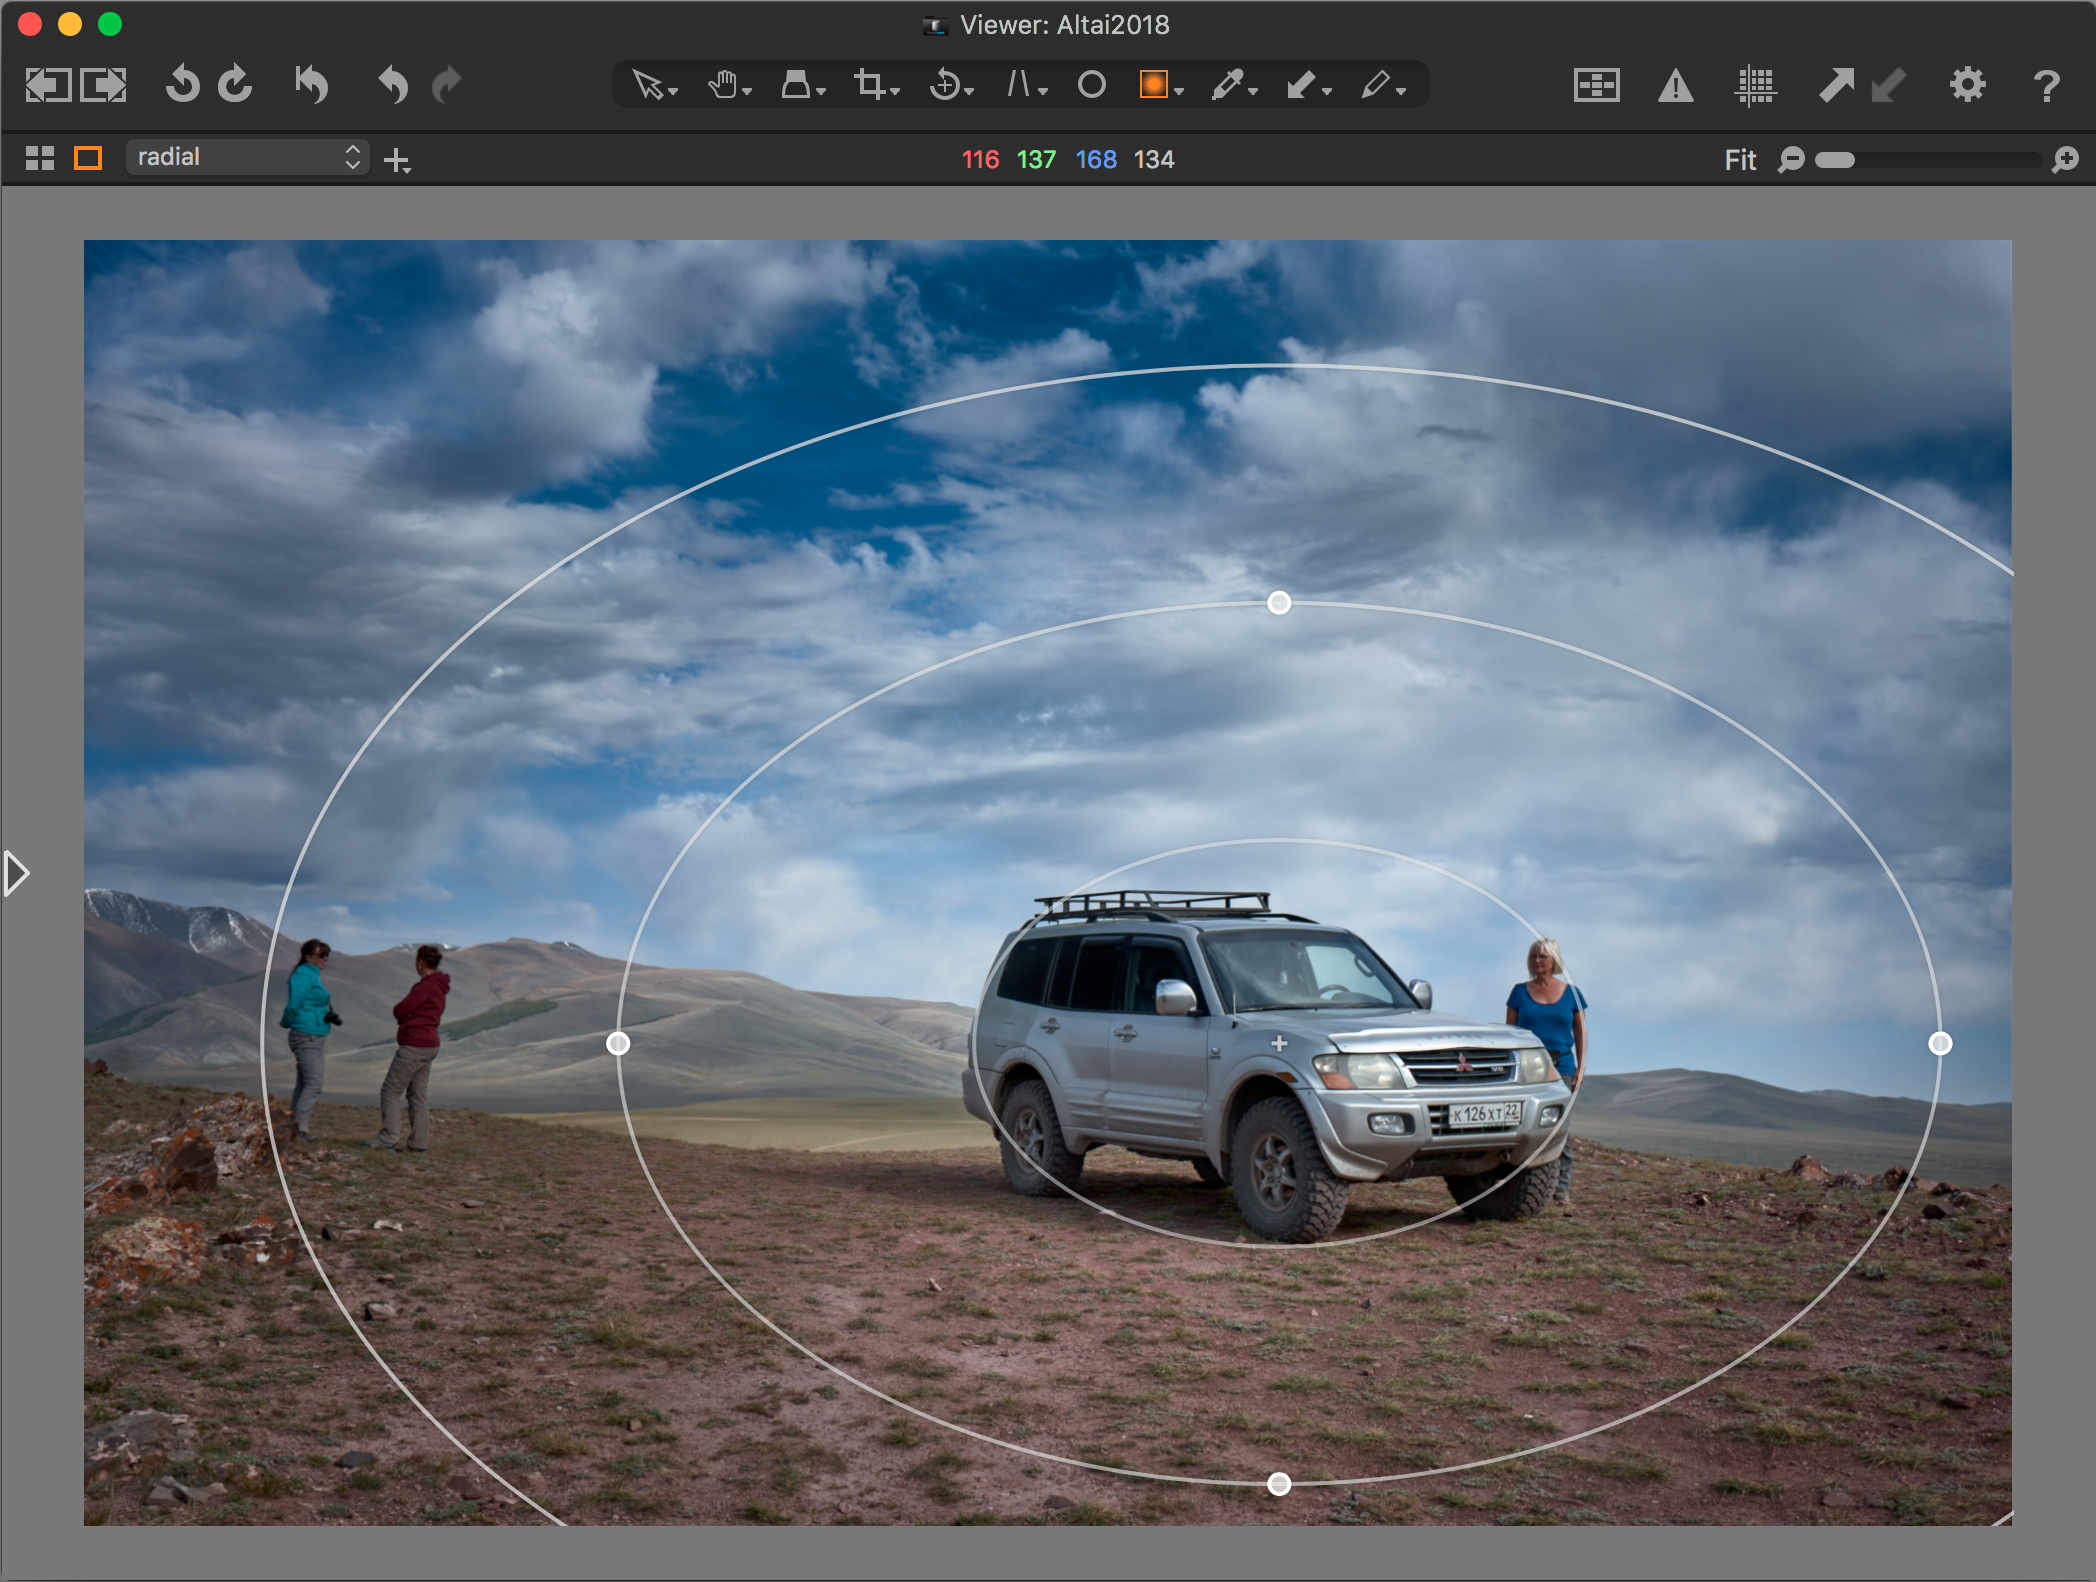 capture one pro 12 review, viewer, radial gradient mask tool